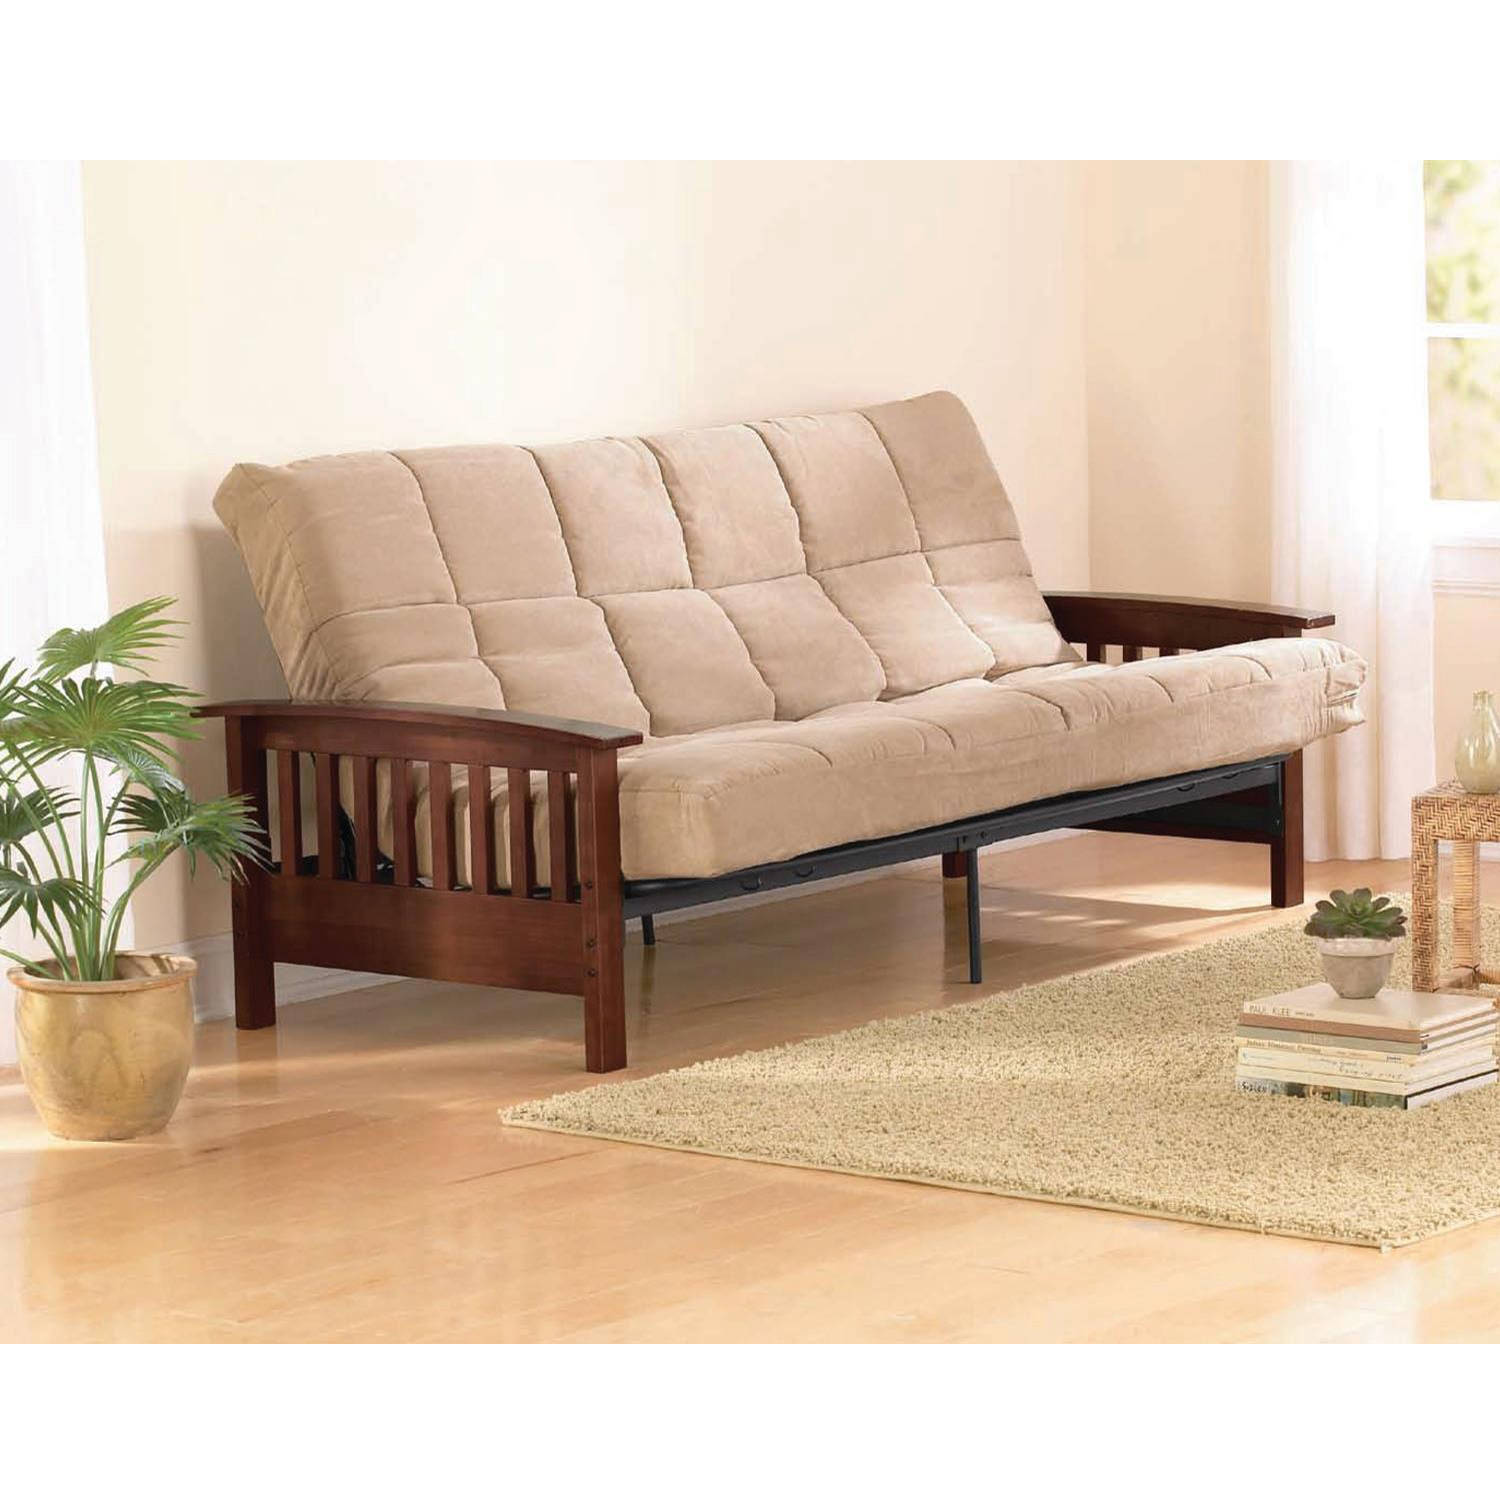 Wood Futon Arms Frame Finish Sofa Bed